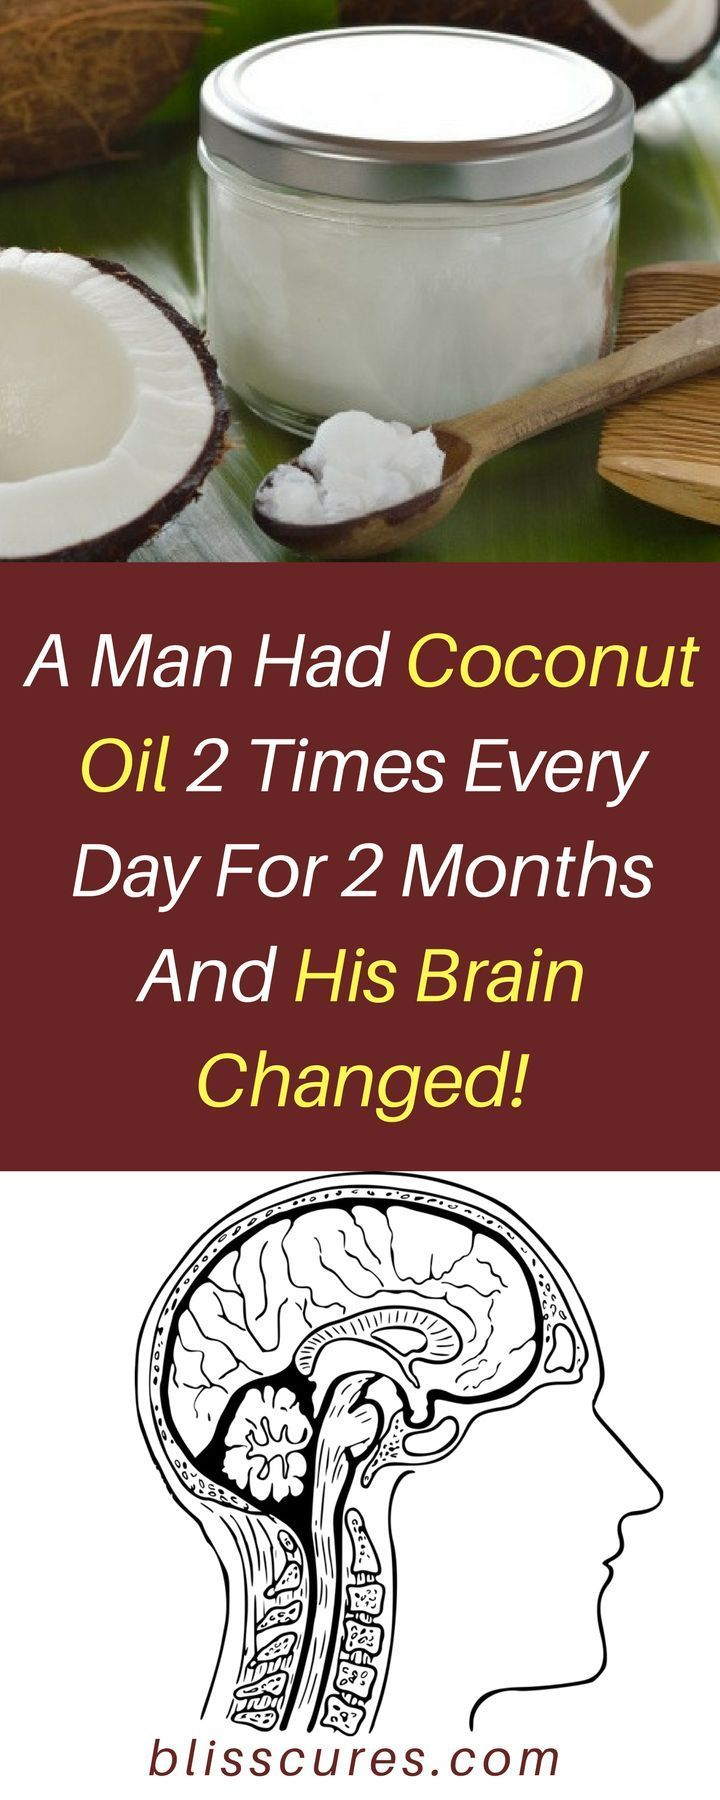 A Man Had Coconut Oil 2 Times Every Day For 2 Months And His Brain Changed!